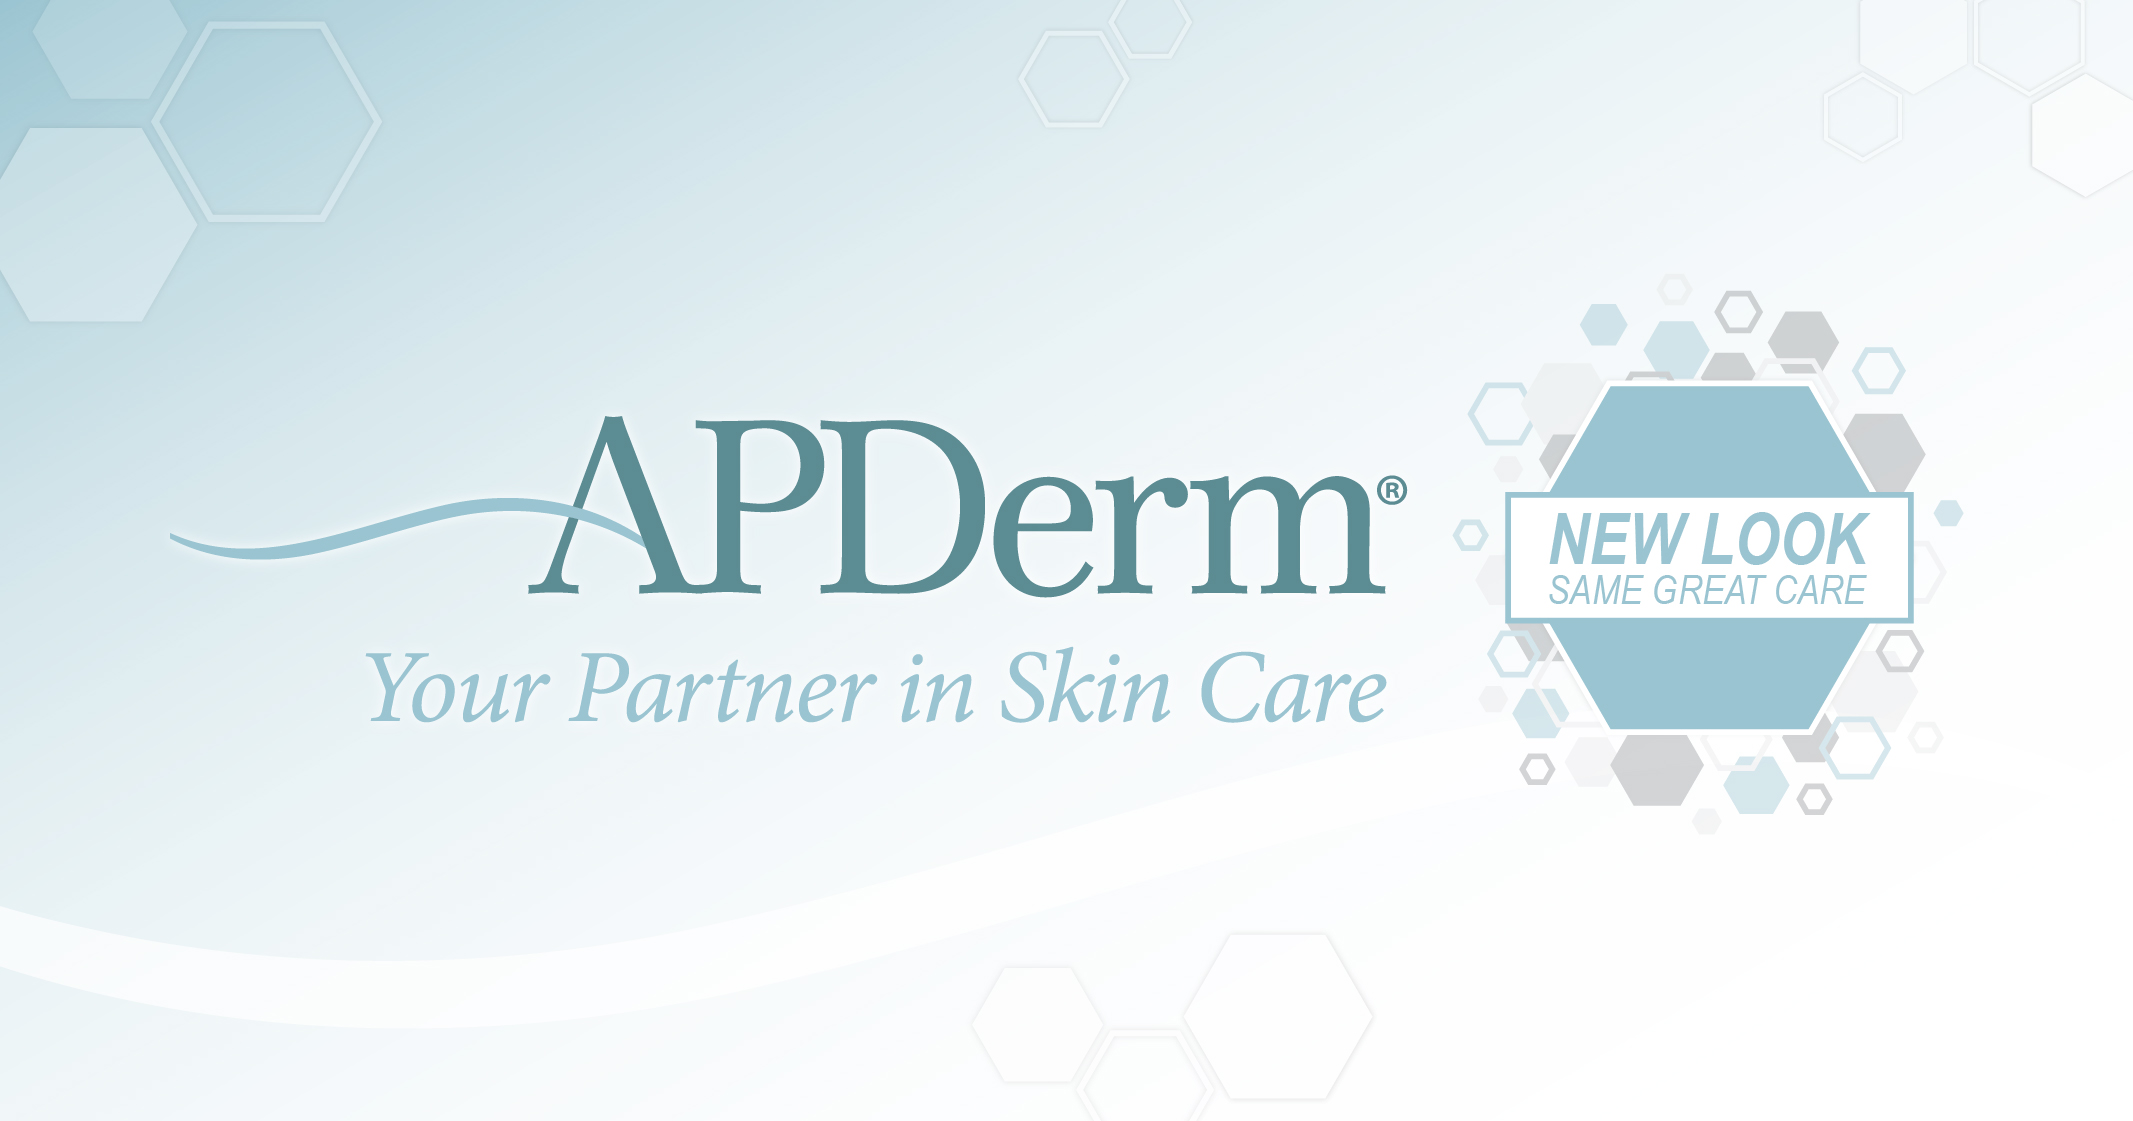 New Look, Same Great Care